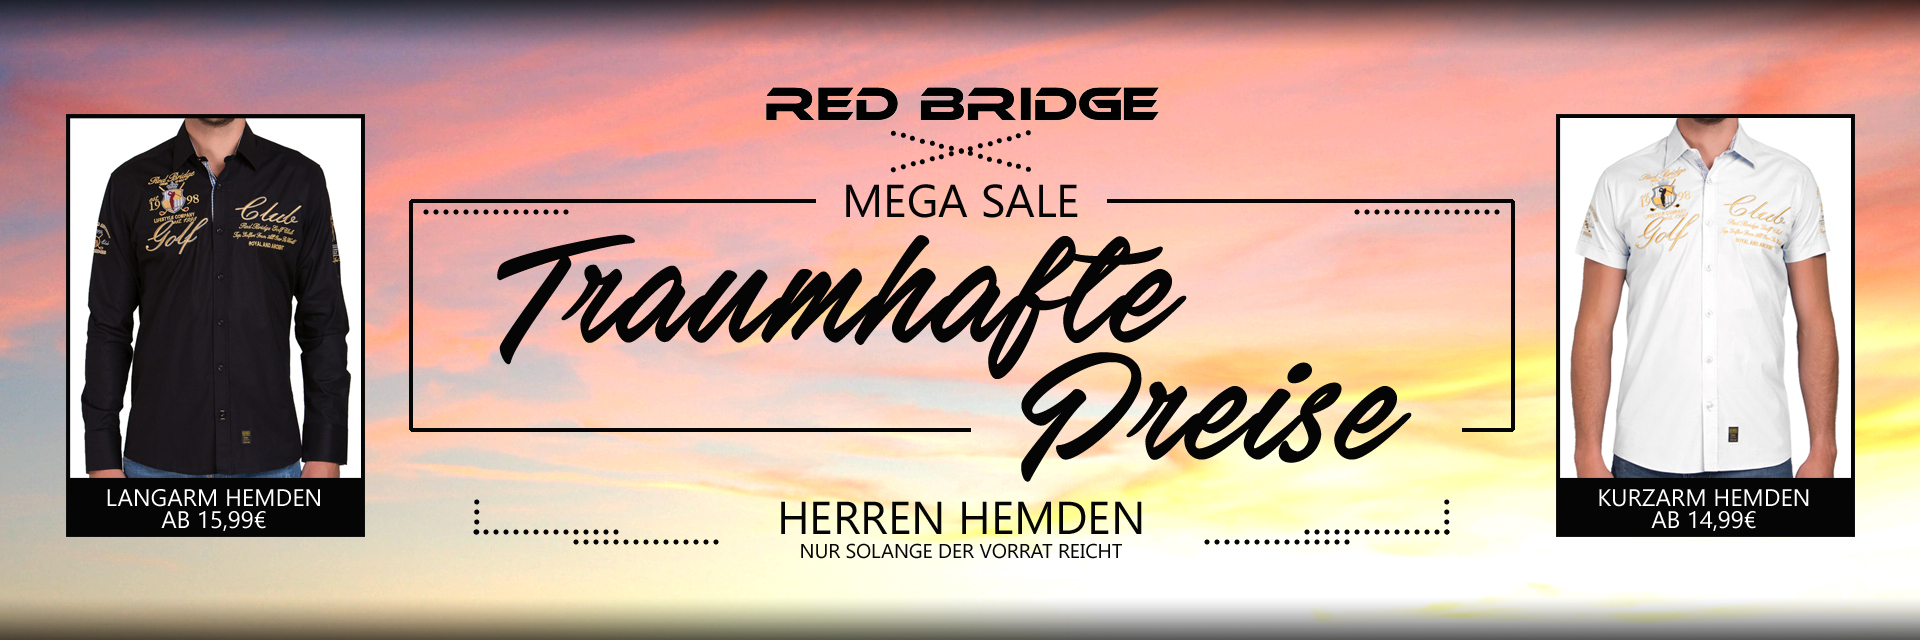 Red Bridge Jeans Hemd Sale